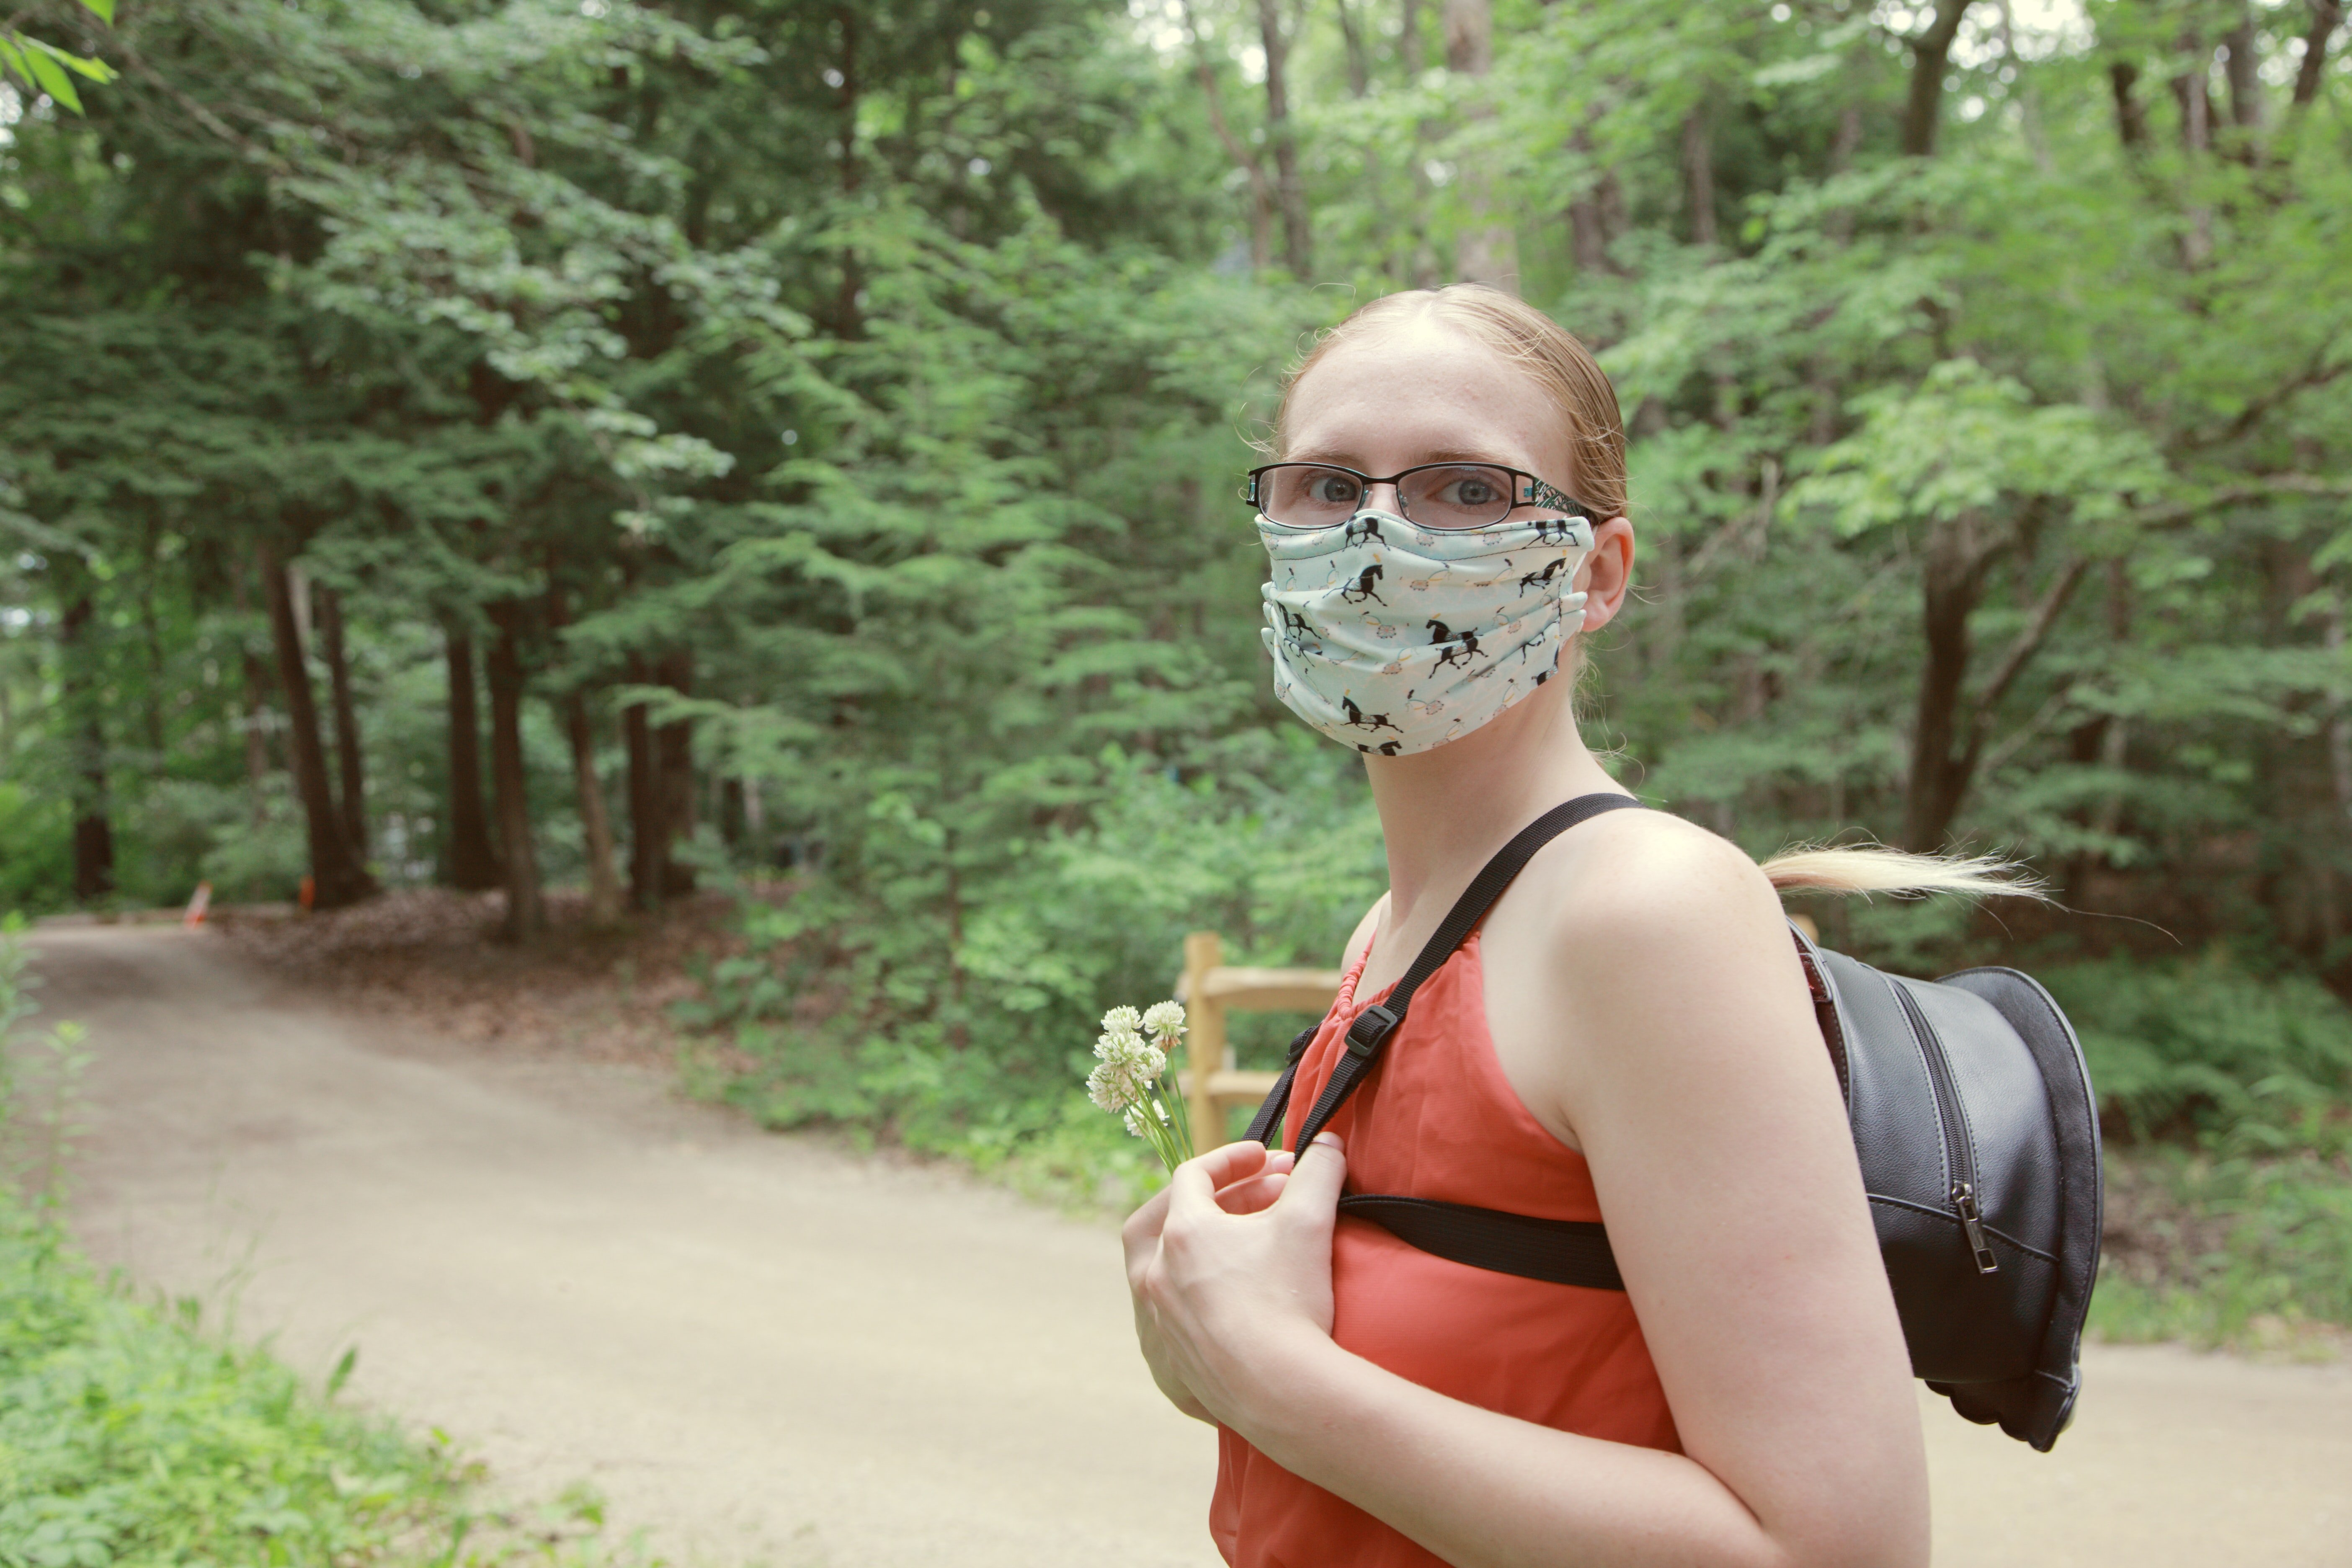 Woman exploring the forest with a mask